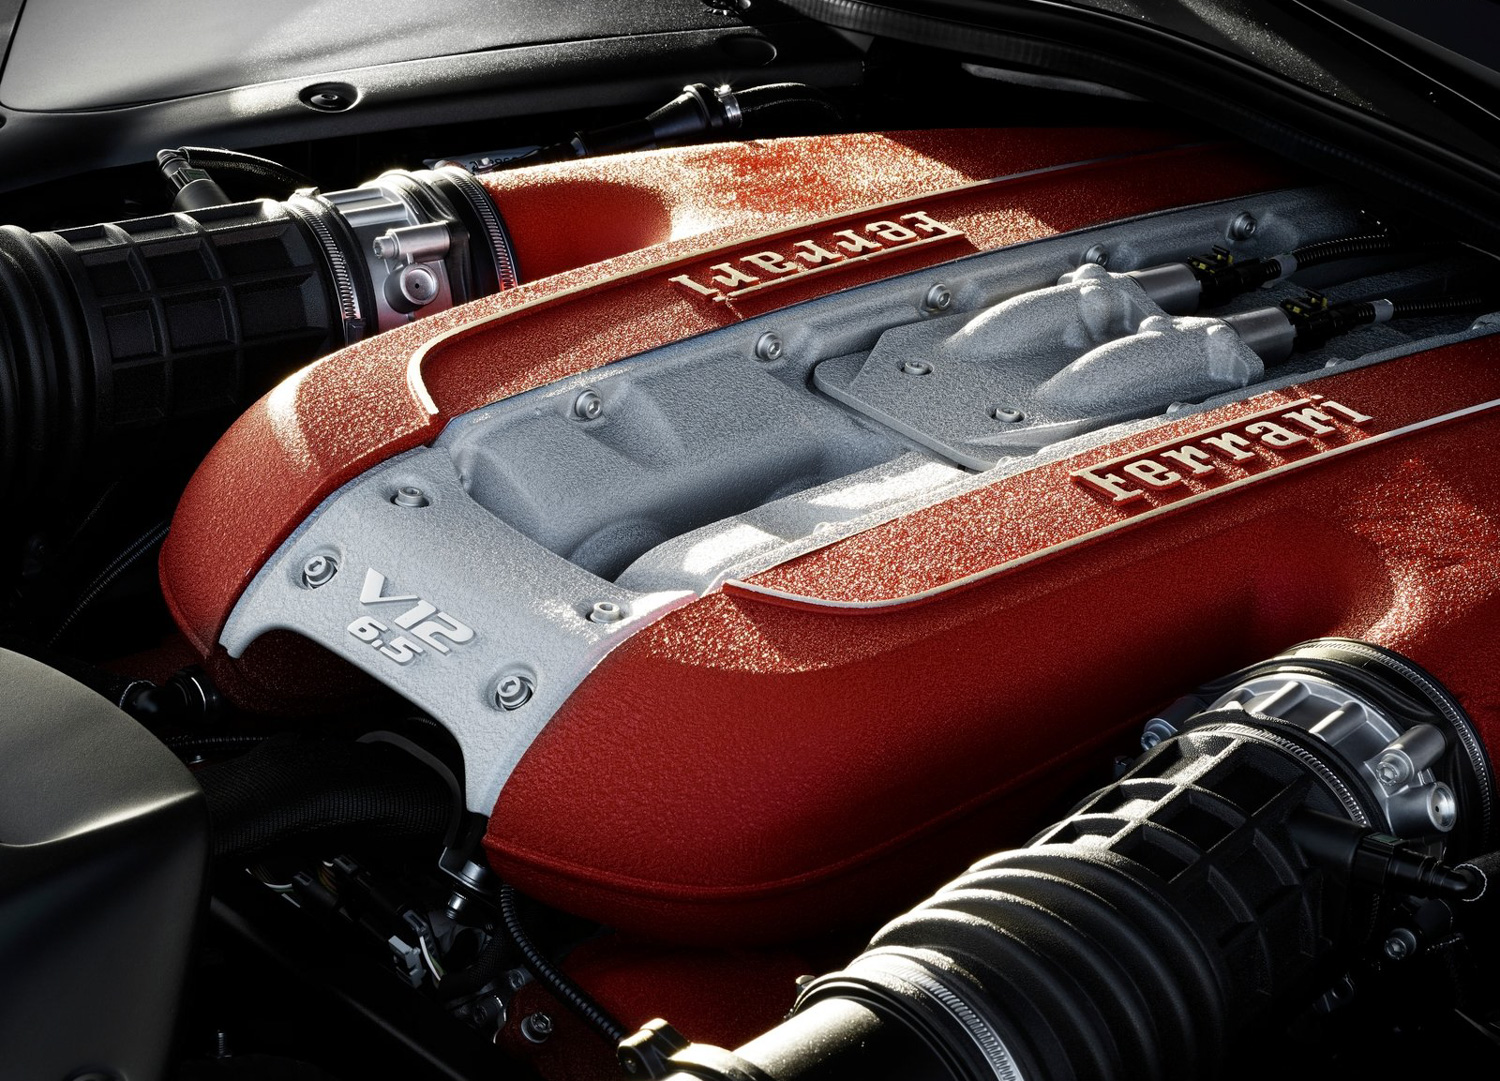 2018 Ferrari 812 Superfast engine close